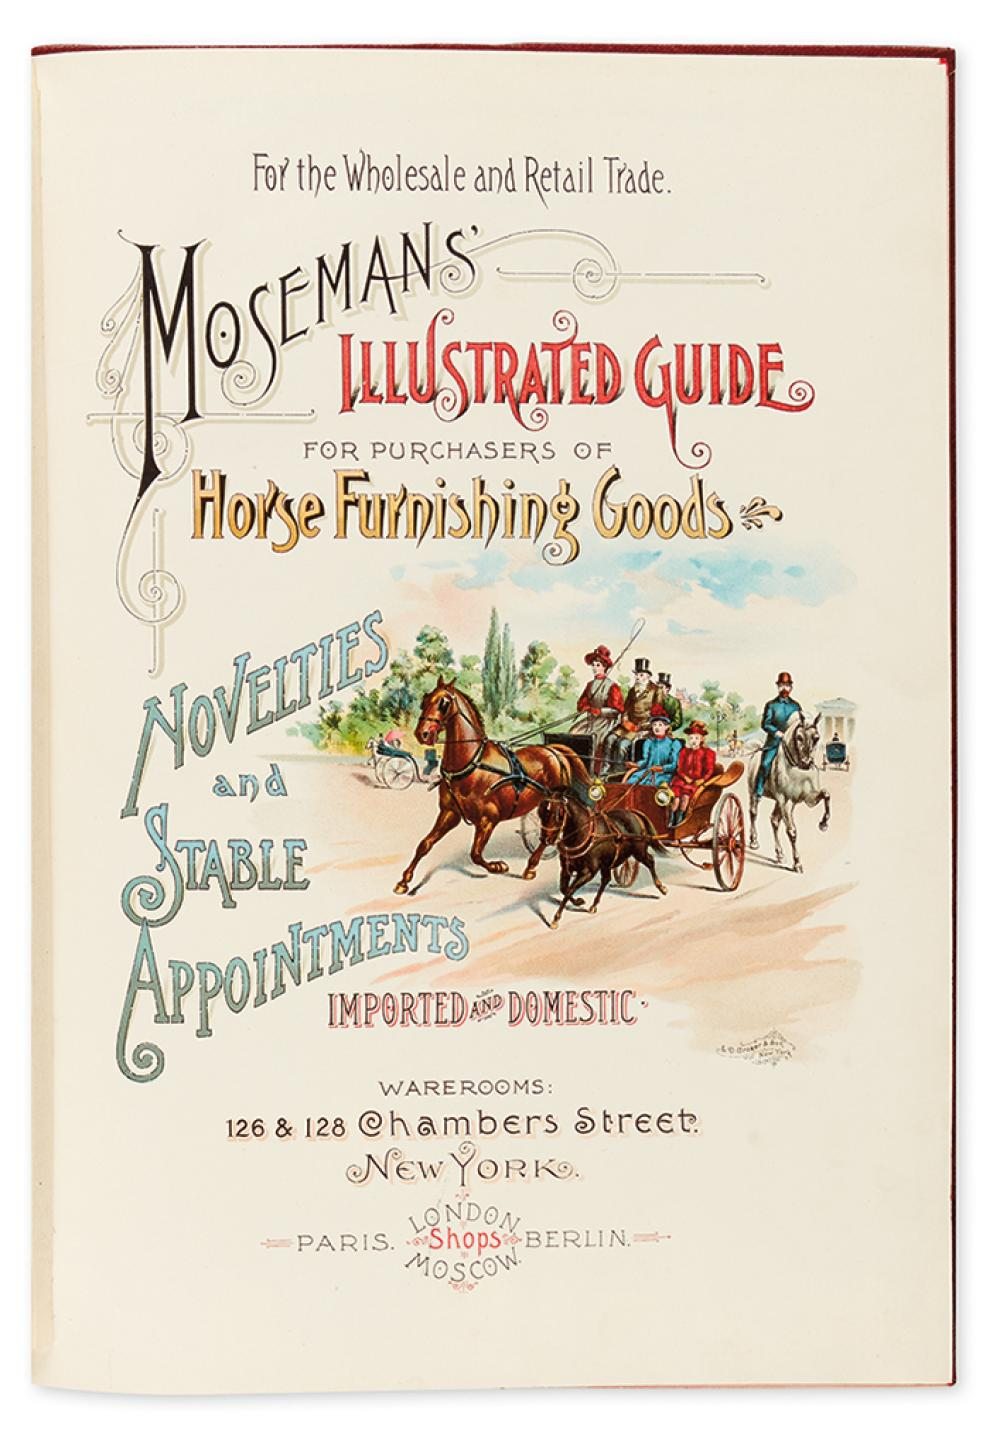 (TRADE CATALOG - EQUESTRIAN.) Moseman, C.M. & Brother. Moseman''s Illustrated Guide for Purchases of Horse Furnising Goods,